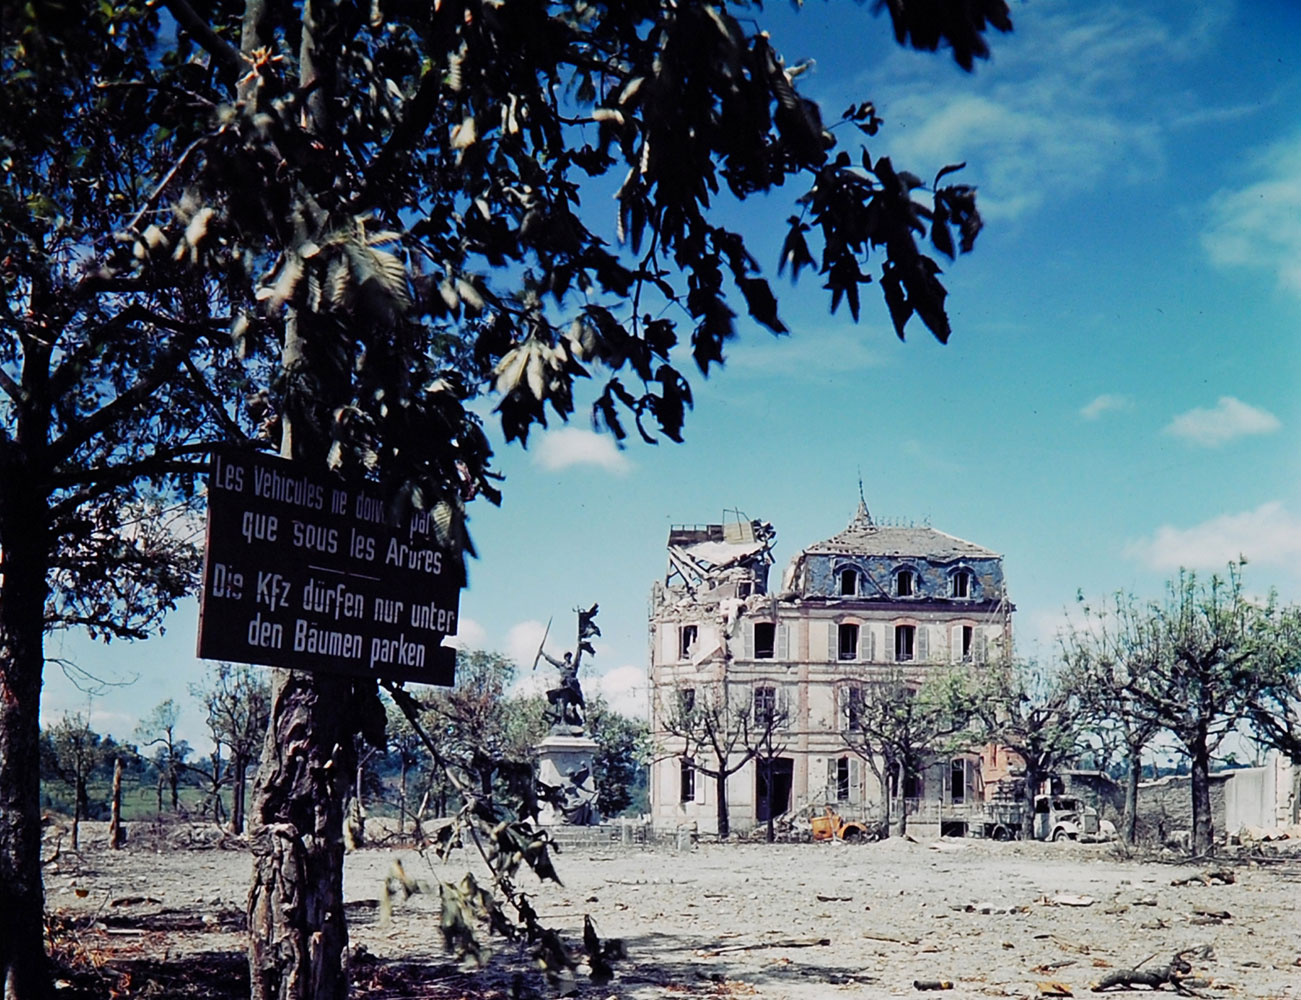 Ruined building and sign in French and German, northwestern France, summer 1944.